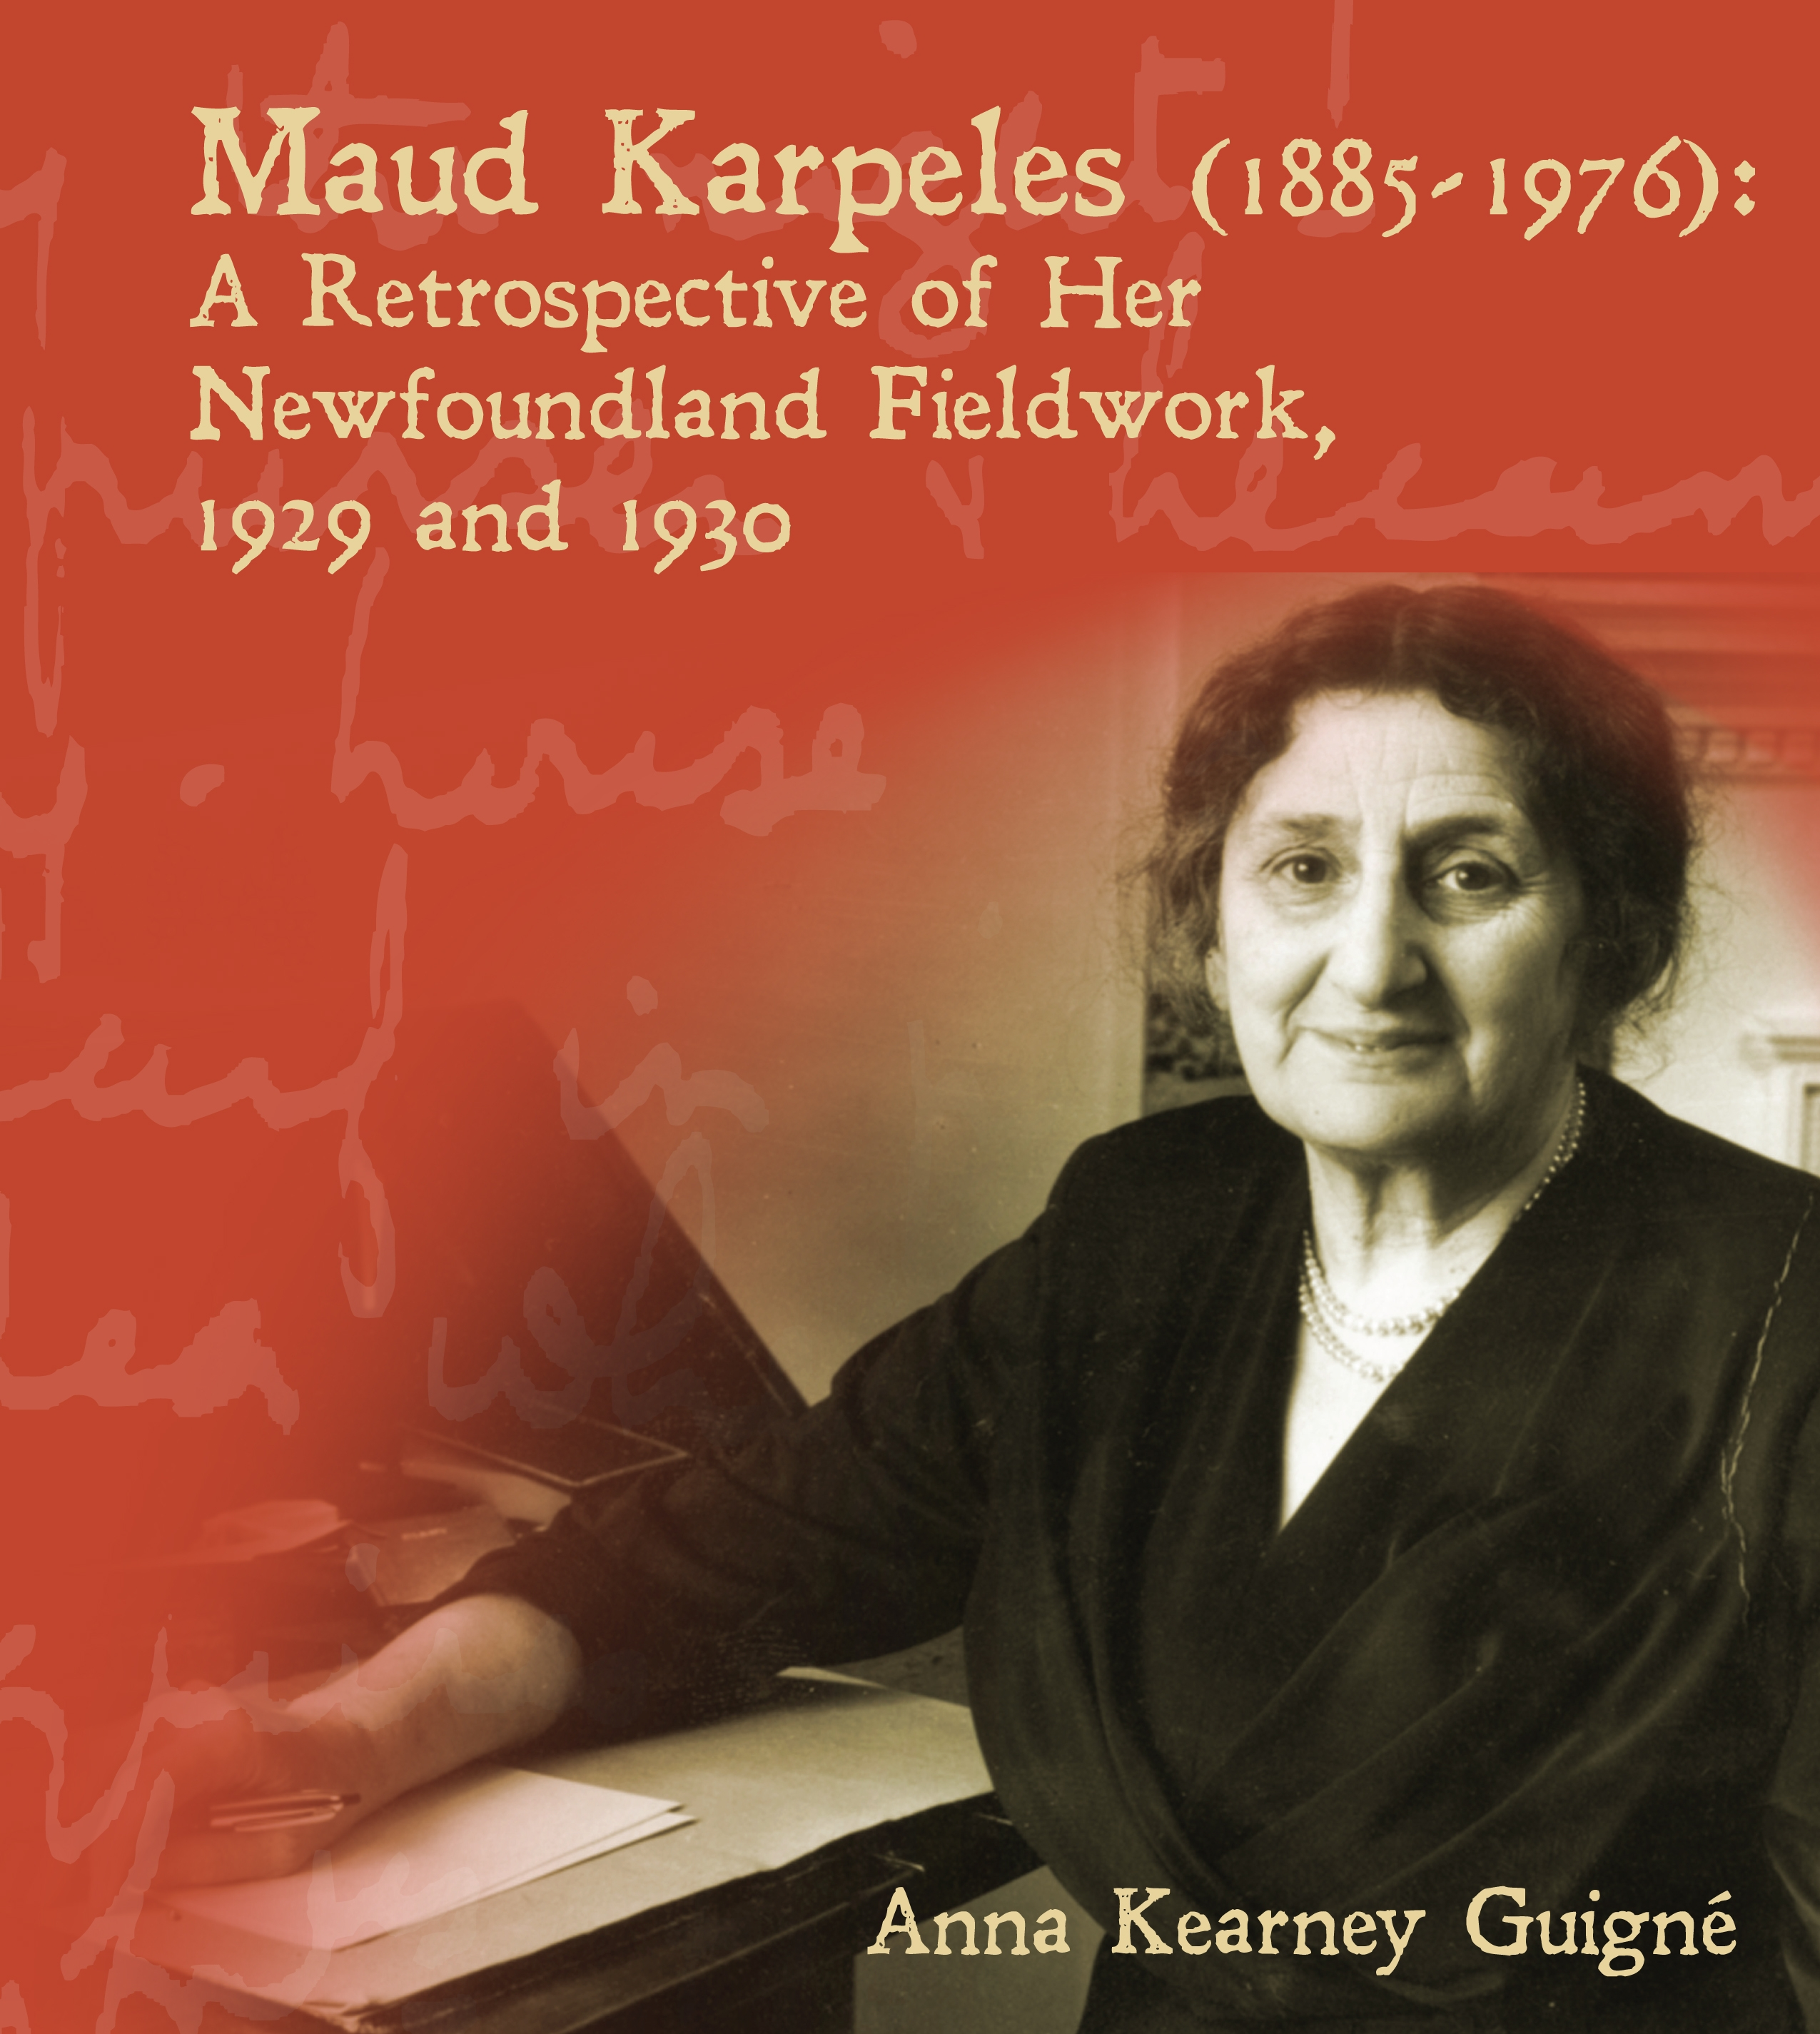 Maud Karpeles (1885-1976): A Retrospective of Her Newfoundland Fieldwork, 1929 and 1930